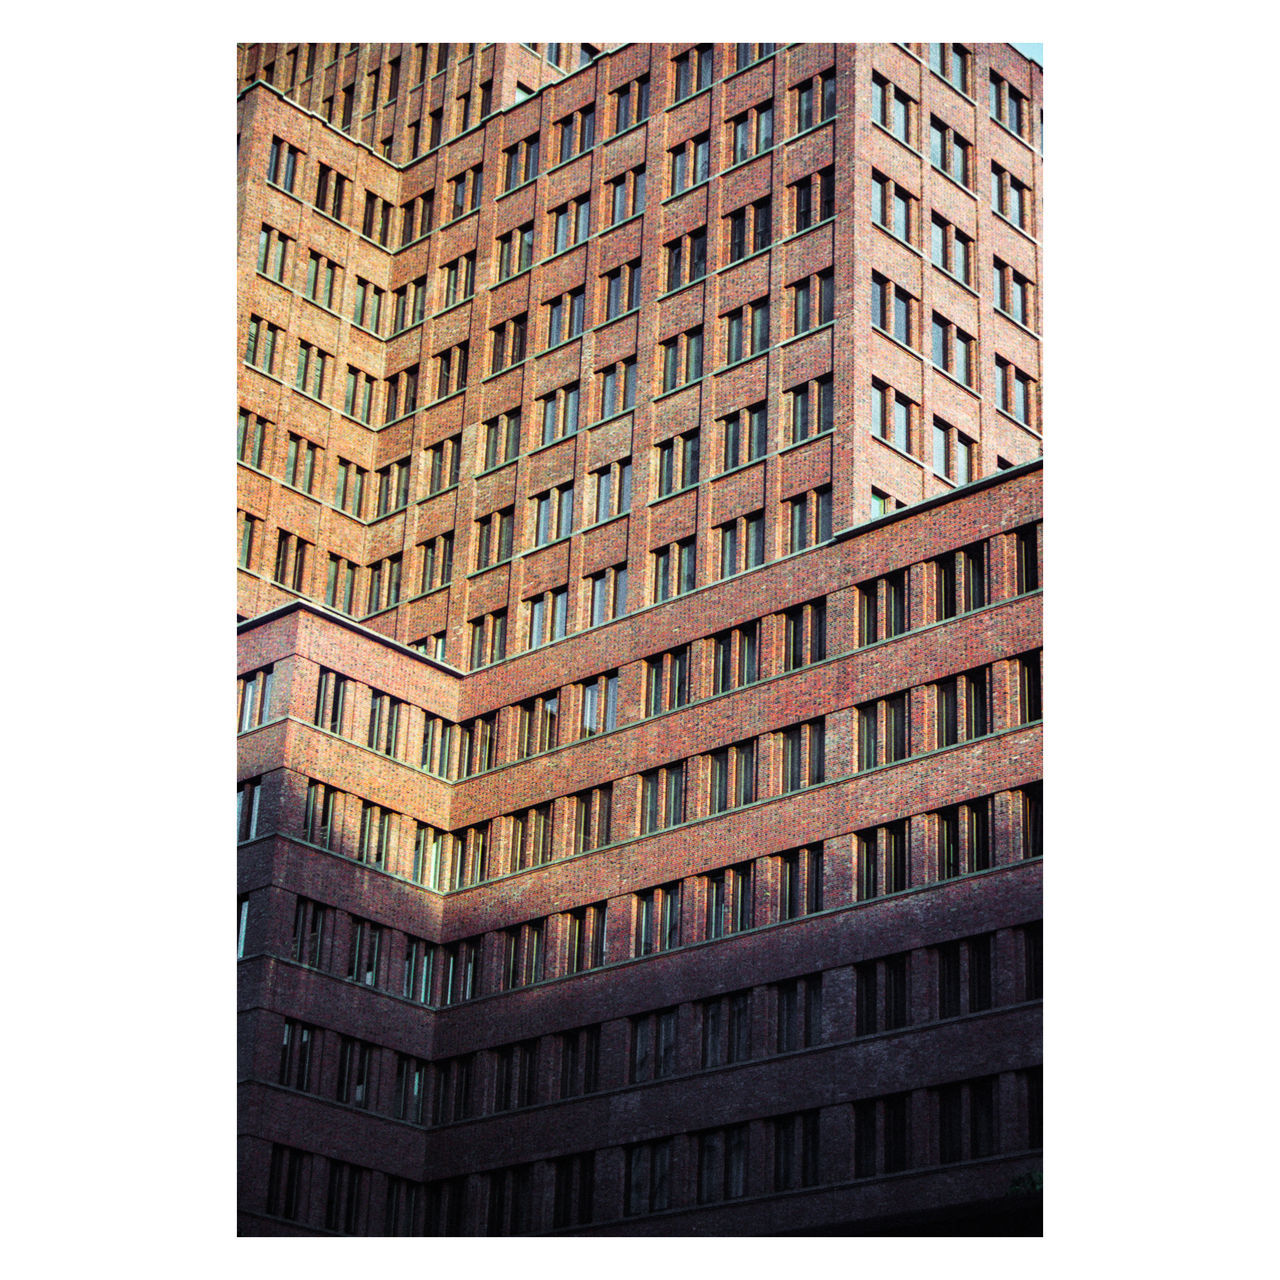 I don't like this part of Berlin. A place where people just go to work and that's it. Nothing important. Except it's the best place for movies in OV and for bit of architecture photography. Potsdamer Platz, Berlin | Canon EOS 3, Kodak Portra 160 | somewhere around 2015 35mm 35mm Camera 35mm Film 35mmfilm 35mmfilmphotography Architecture Building Exterior Canon Eos 3 City Corporate Business Day Ishootfilm Ishootfilmsendmoney Kodak Kodak Portra Kodak Portra 160